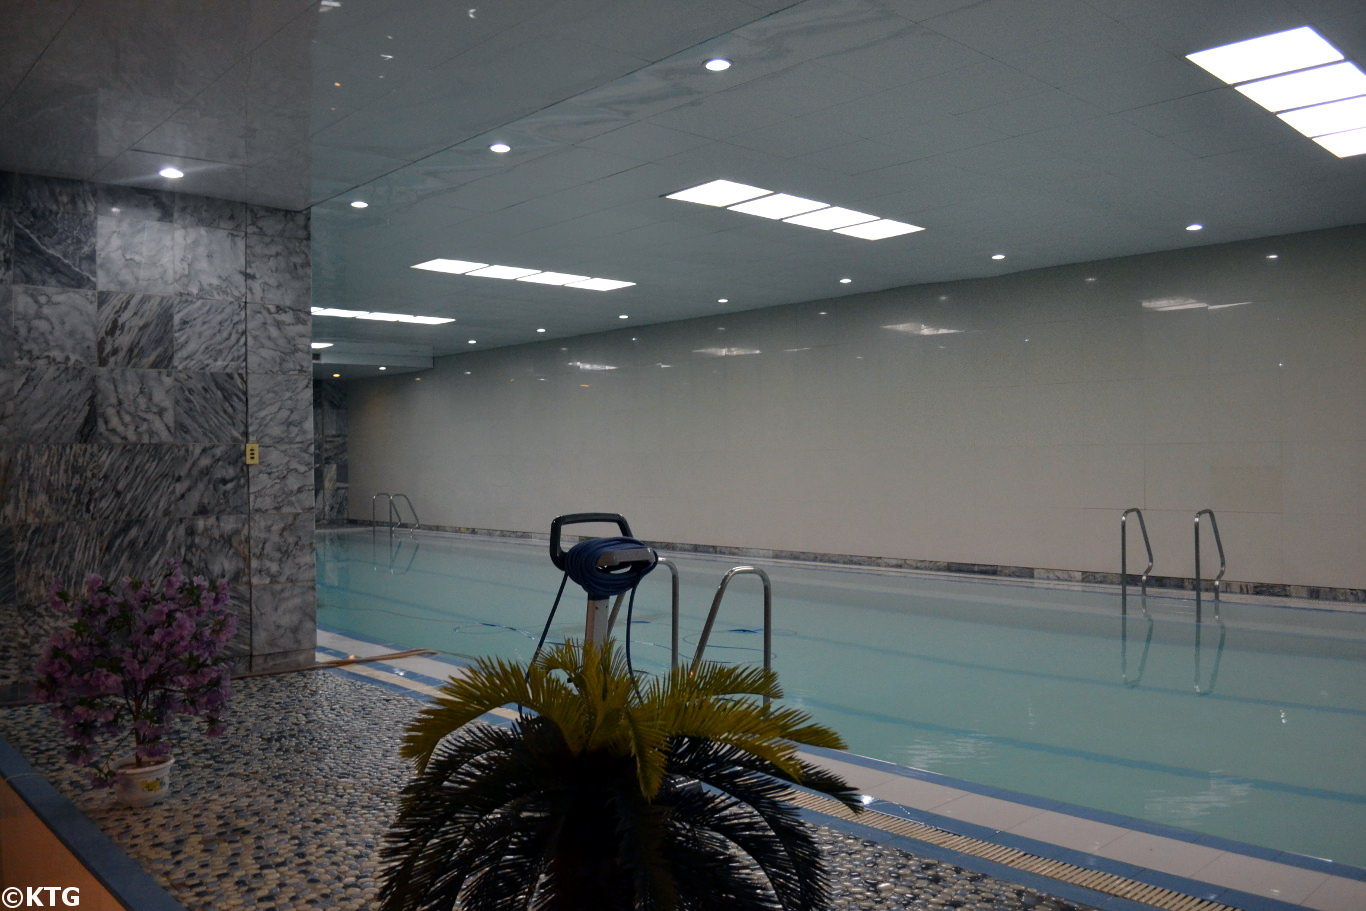 Swimming pool in the Yanggakdo Hotel in North Korea (DPRK). Trip arranged by KTG Tours